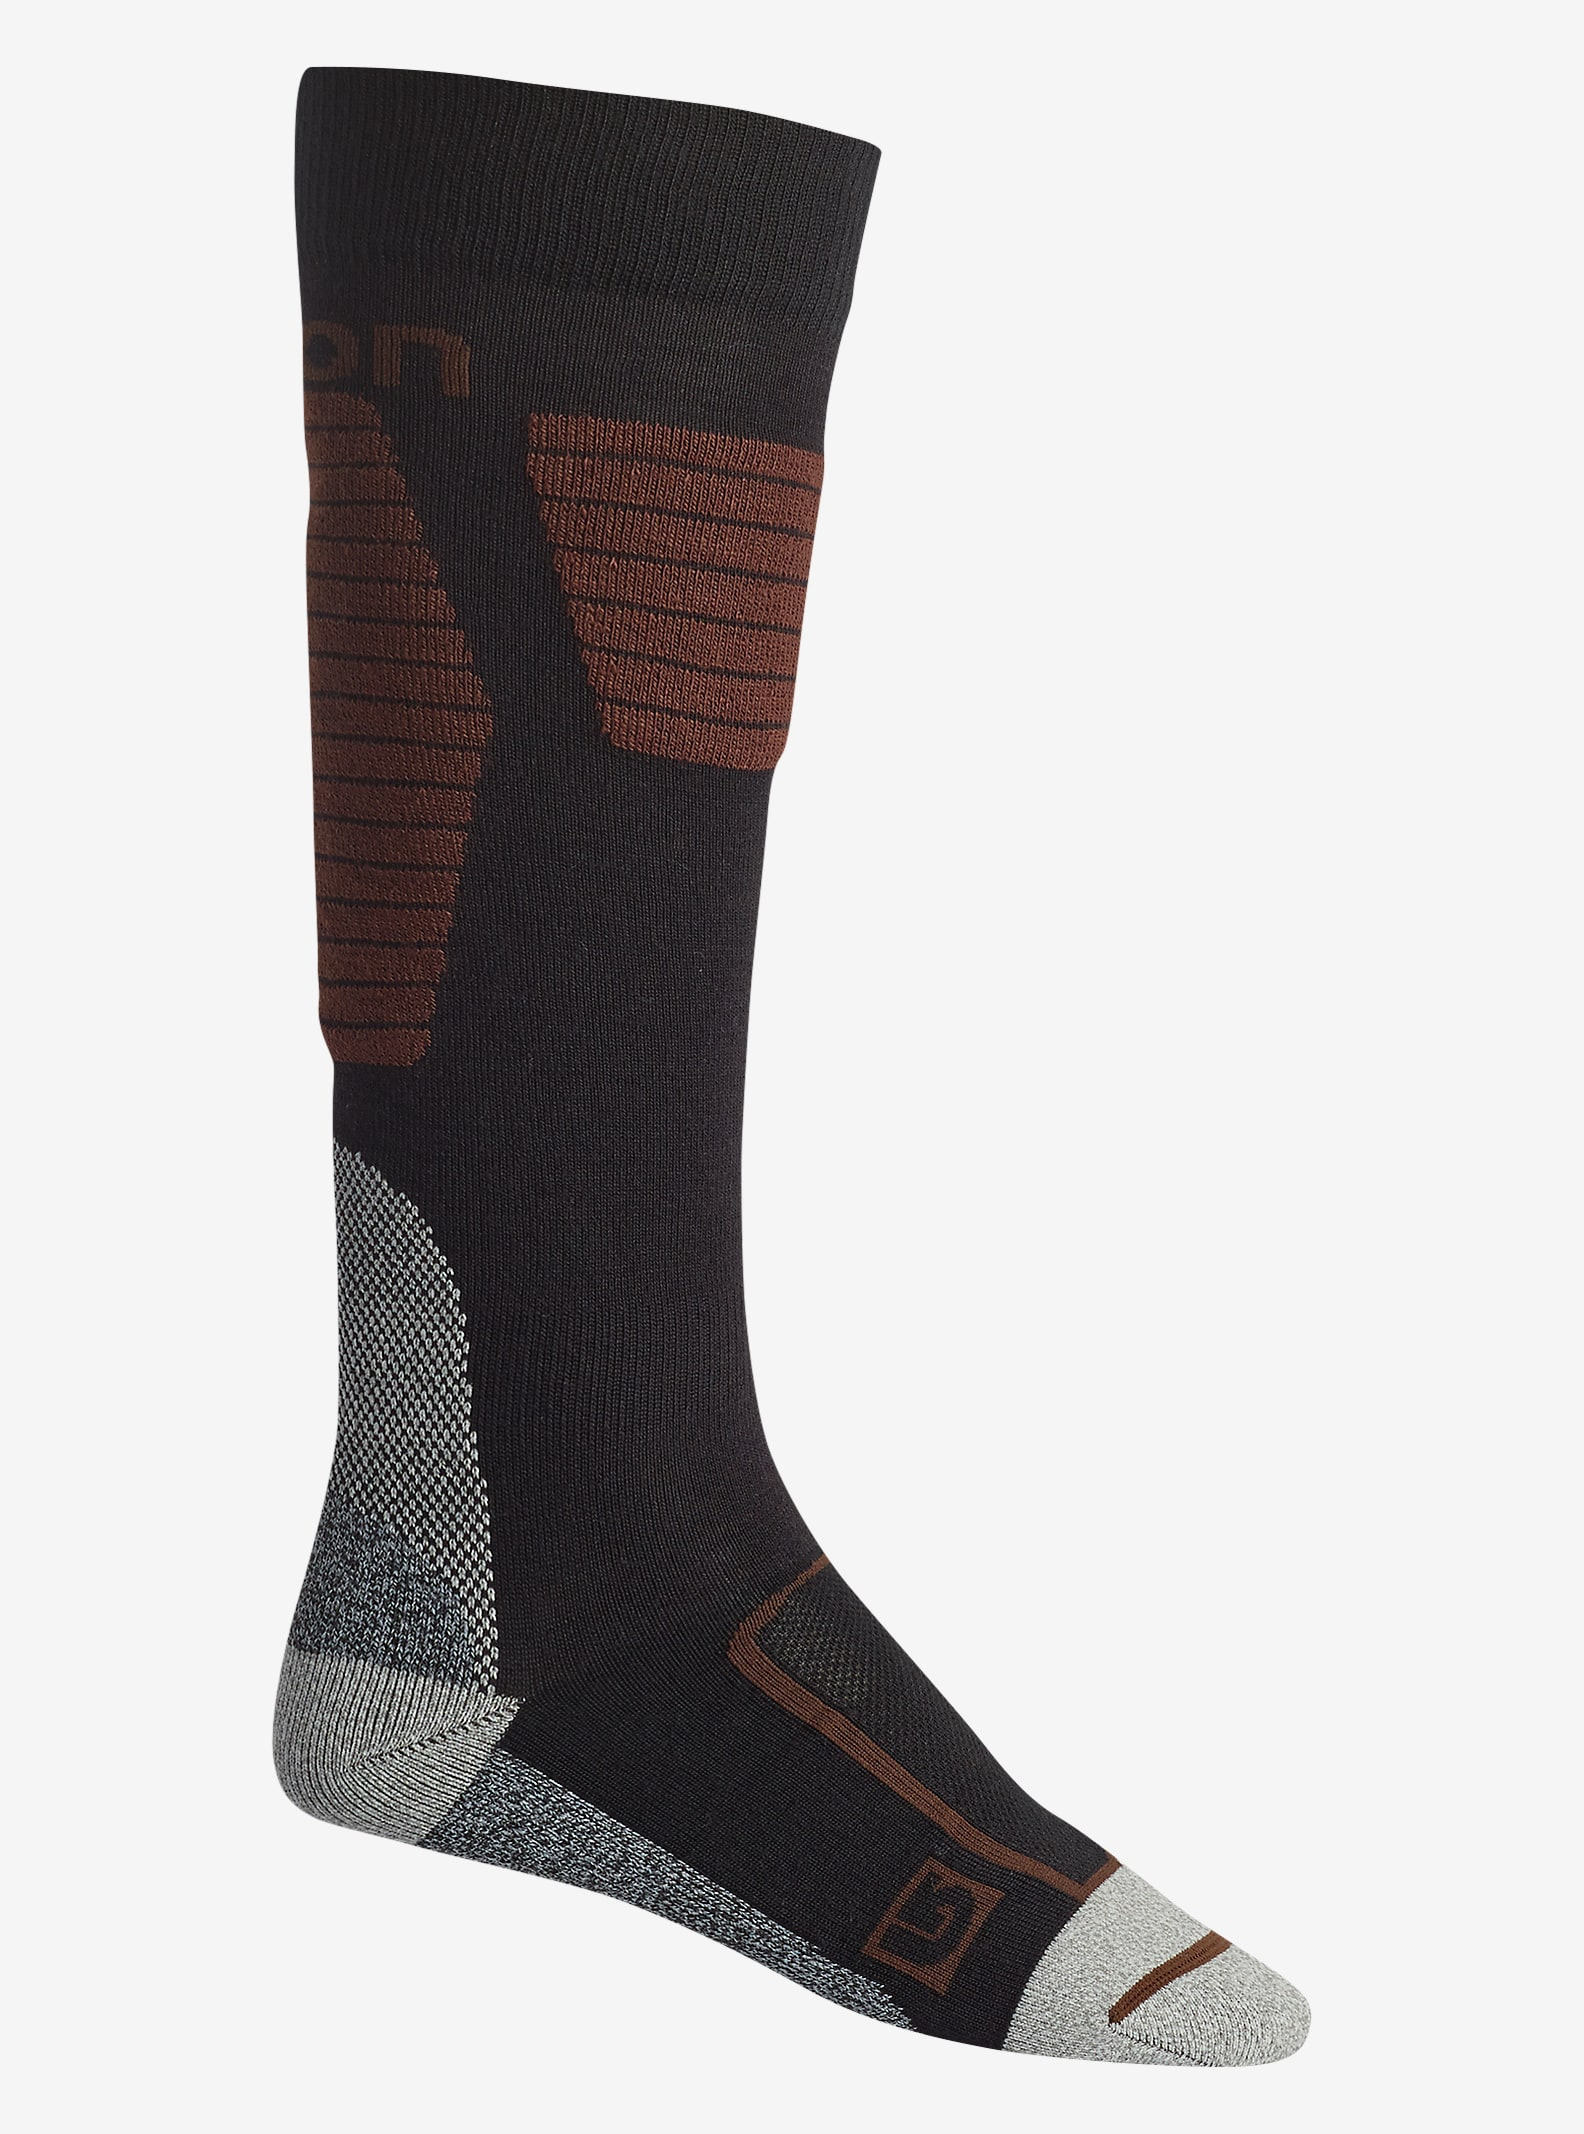 Burton Ultralight Wool Sock shown in True Black